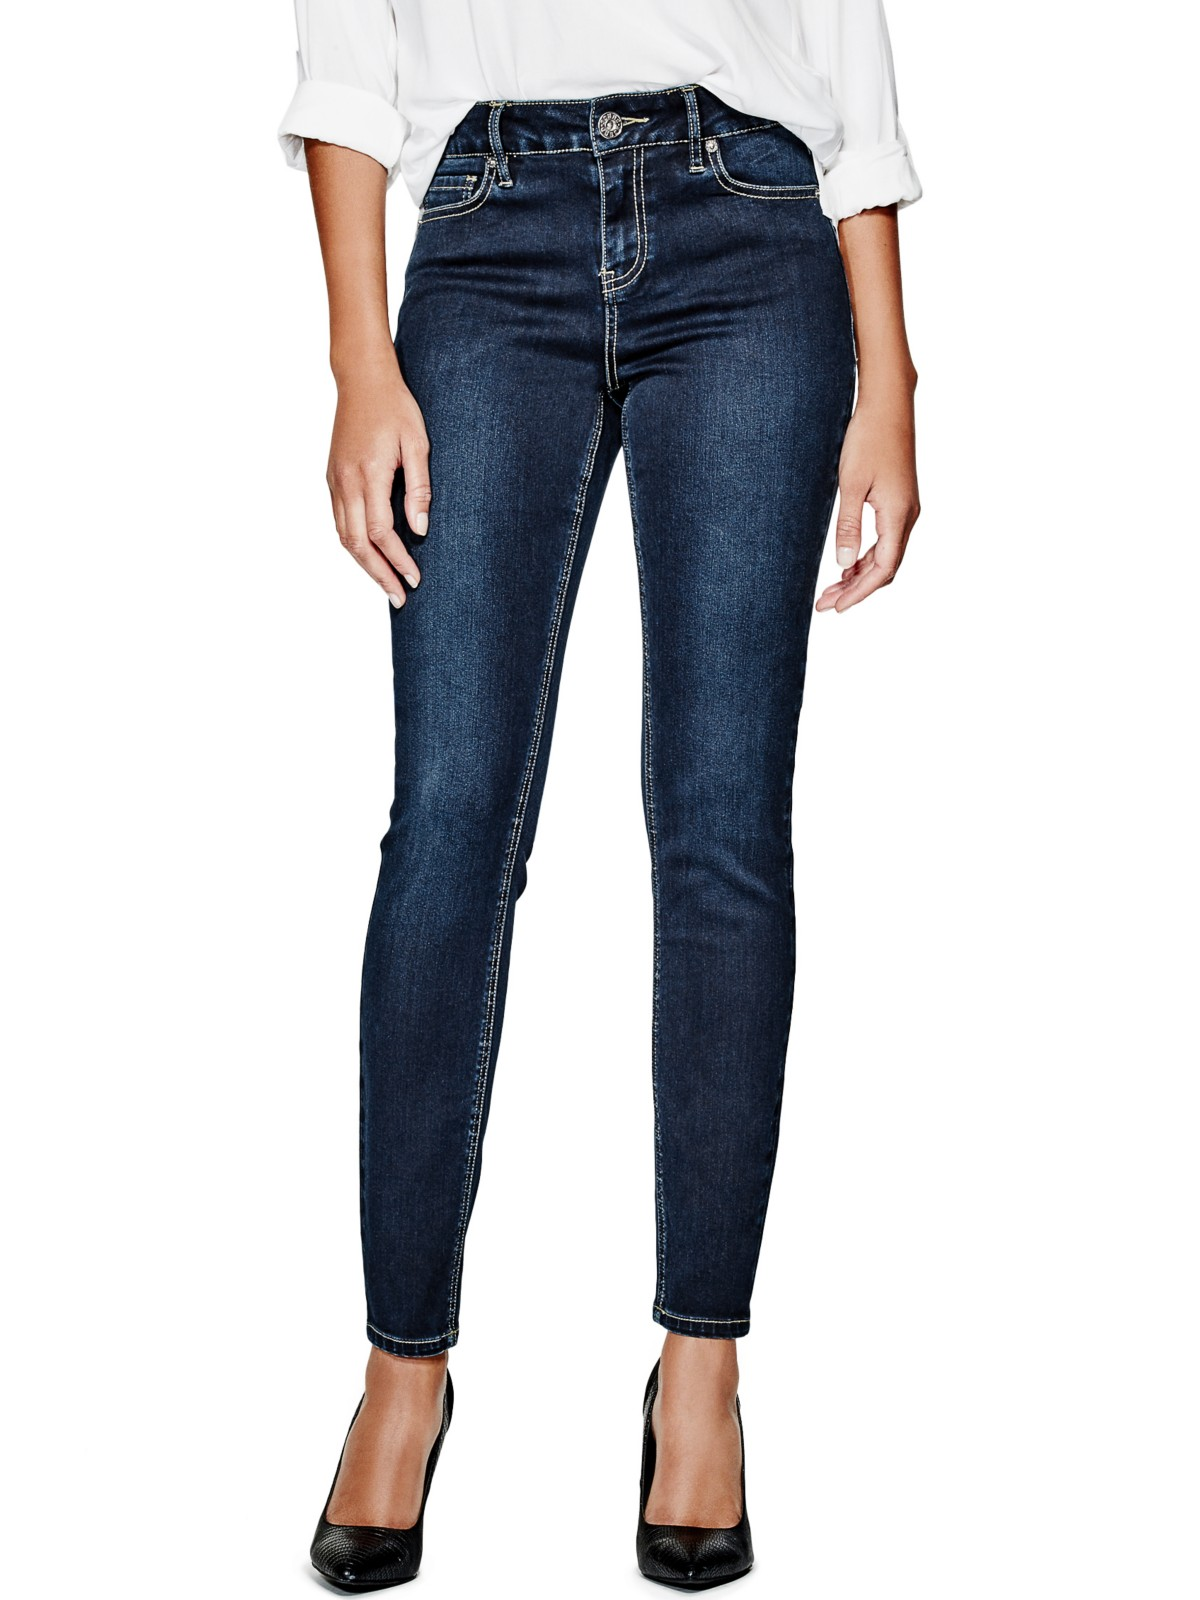 Update a wardrobe with some high rise jeans. This style of jean is extremely chic and sophisticated sitting up higher than traditional blue jeans. The unique design makes these jeans a great match for one-shoulder shirts to figure-flattering sweaters during cooler months.